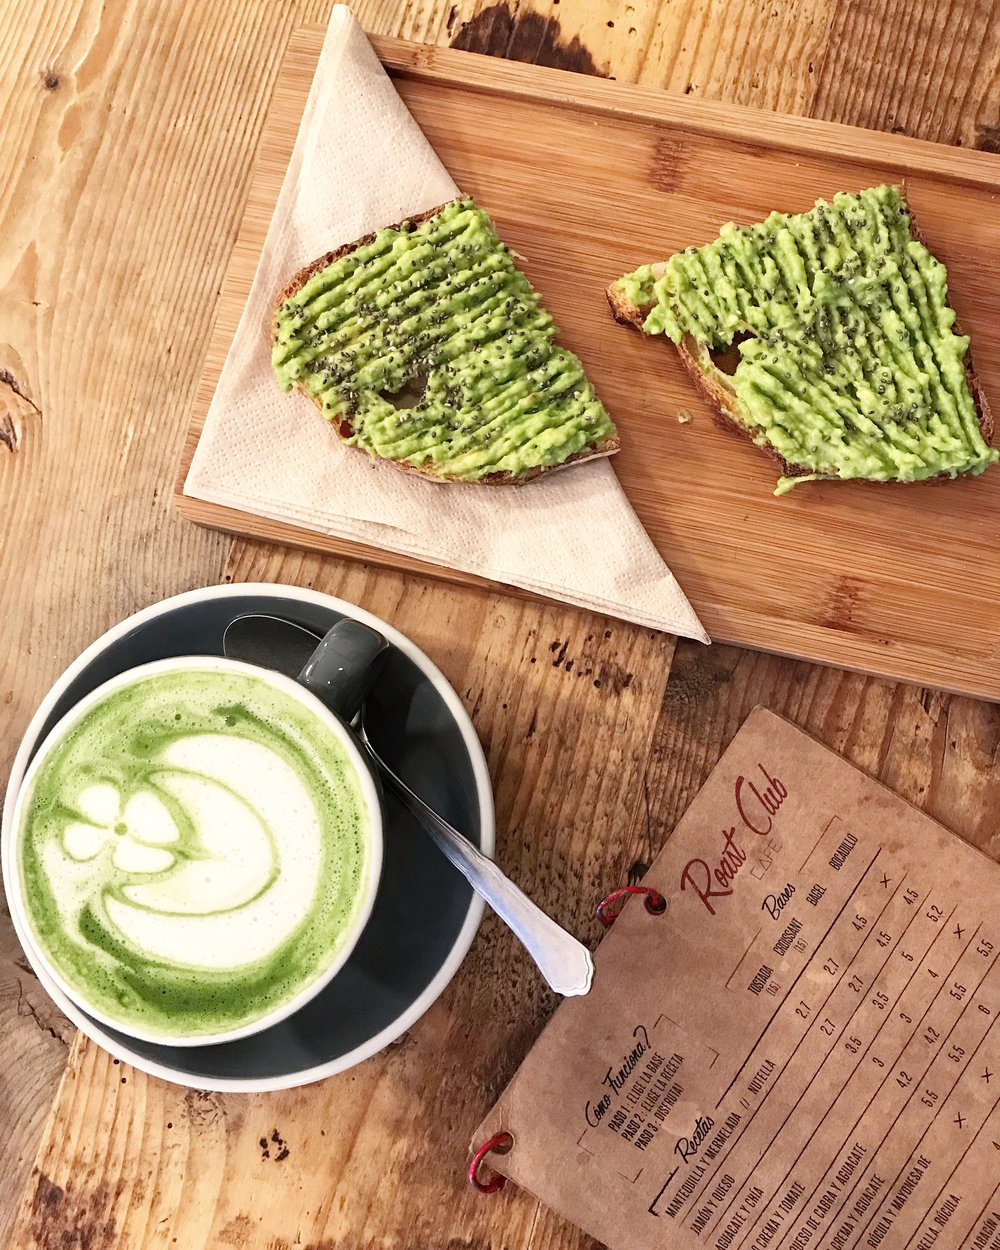 Matcha Latte at Roast Club Cafe, Barcelona